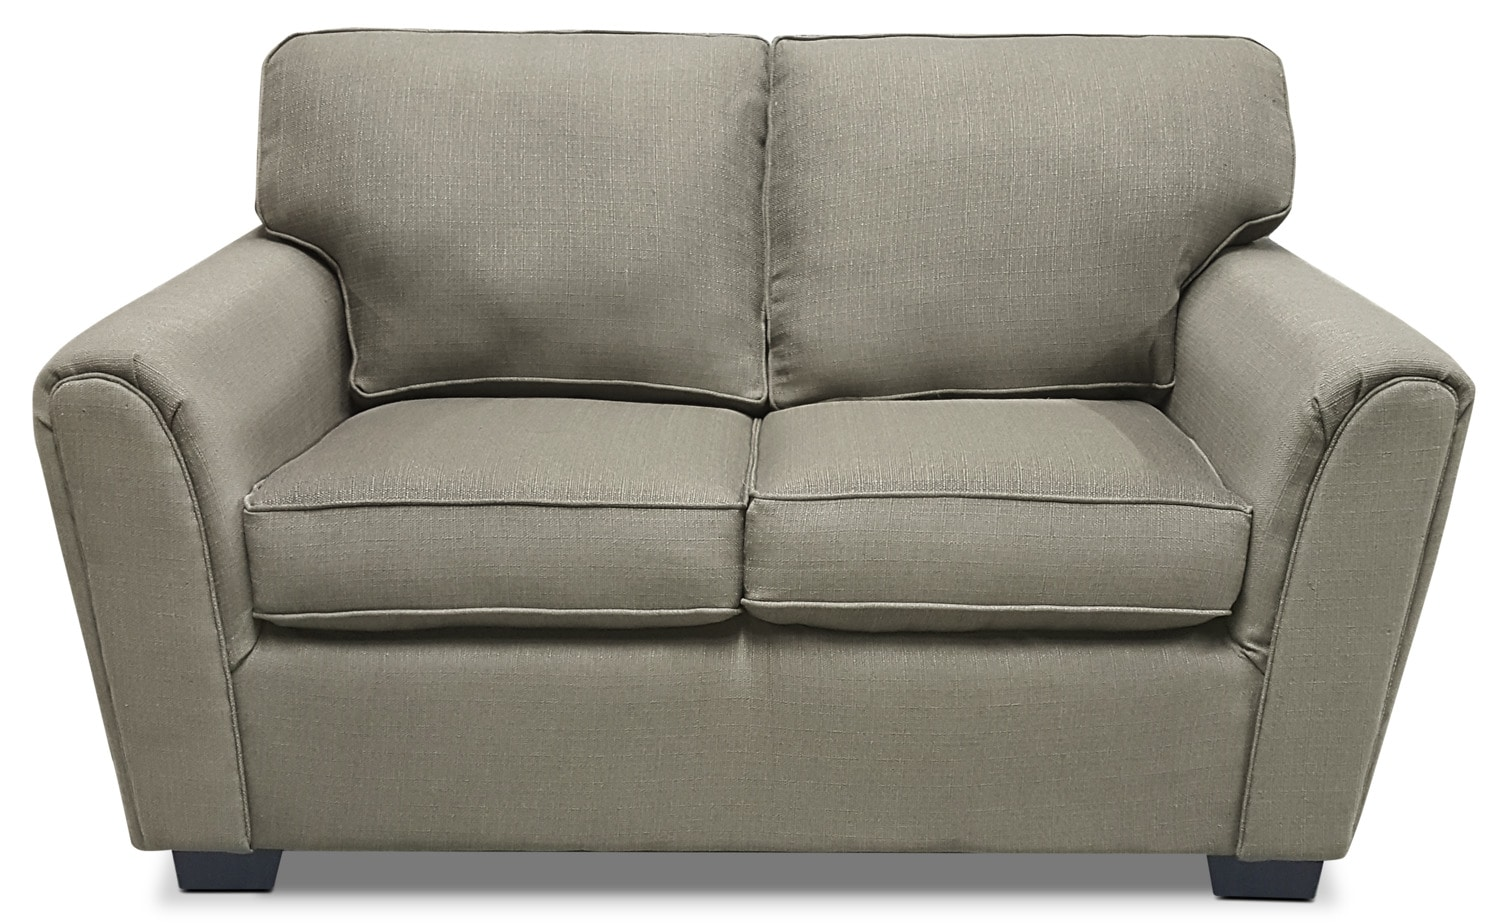 Brynn Linen-Look Fabric Loveseat – Taupe